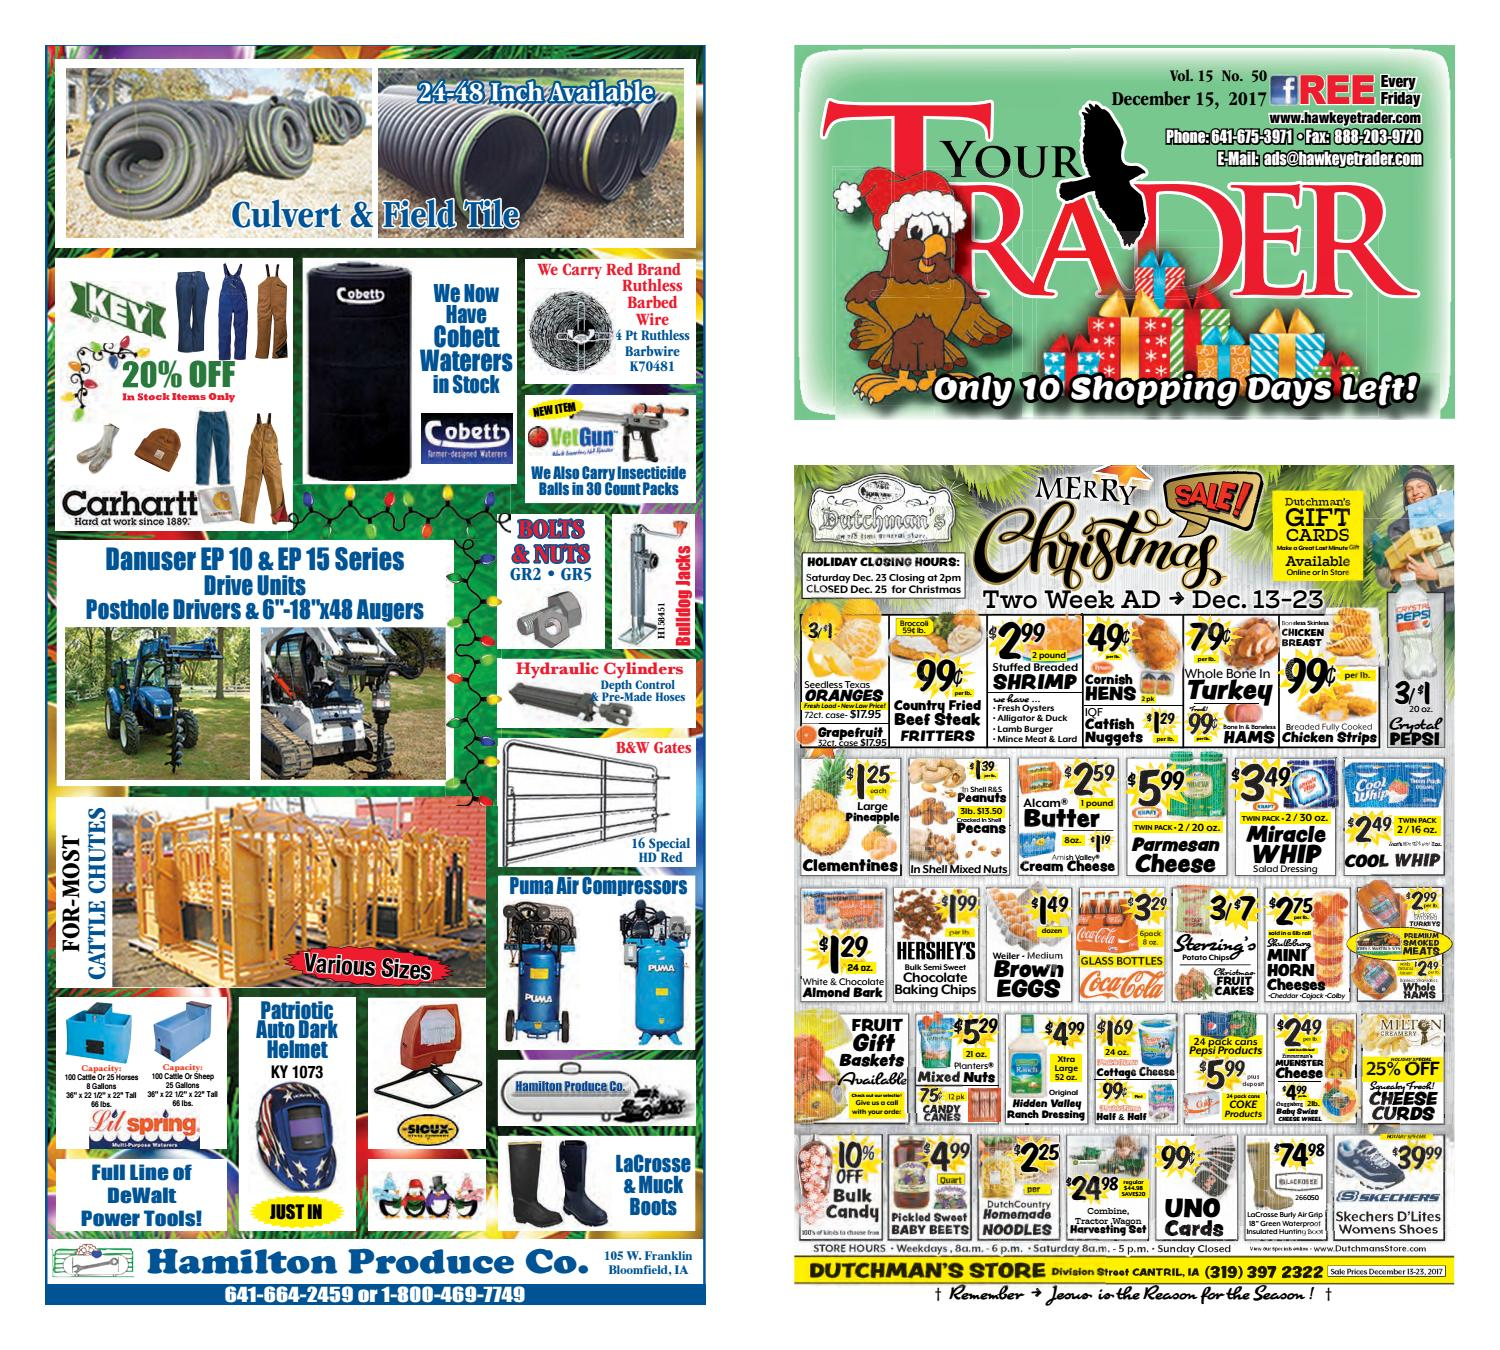 Hawkeyetrader 121517 By Hawkeye Trader Issuu 1988 Kiefer Stock Trailer Wiring Diagram